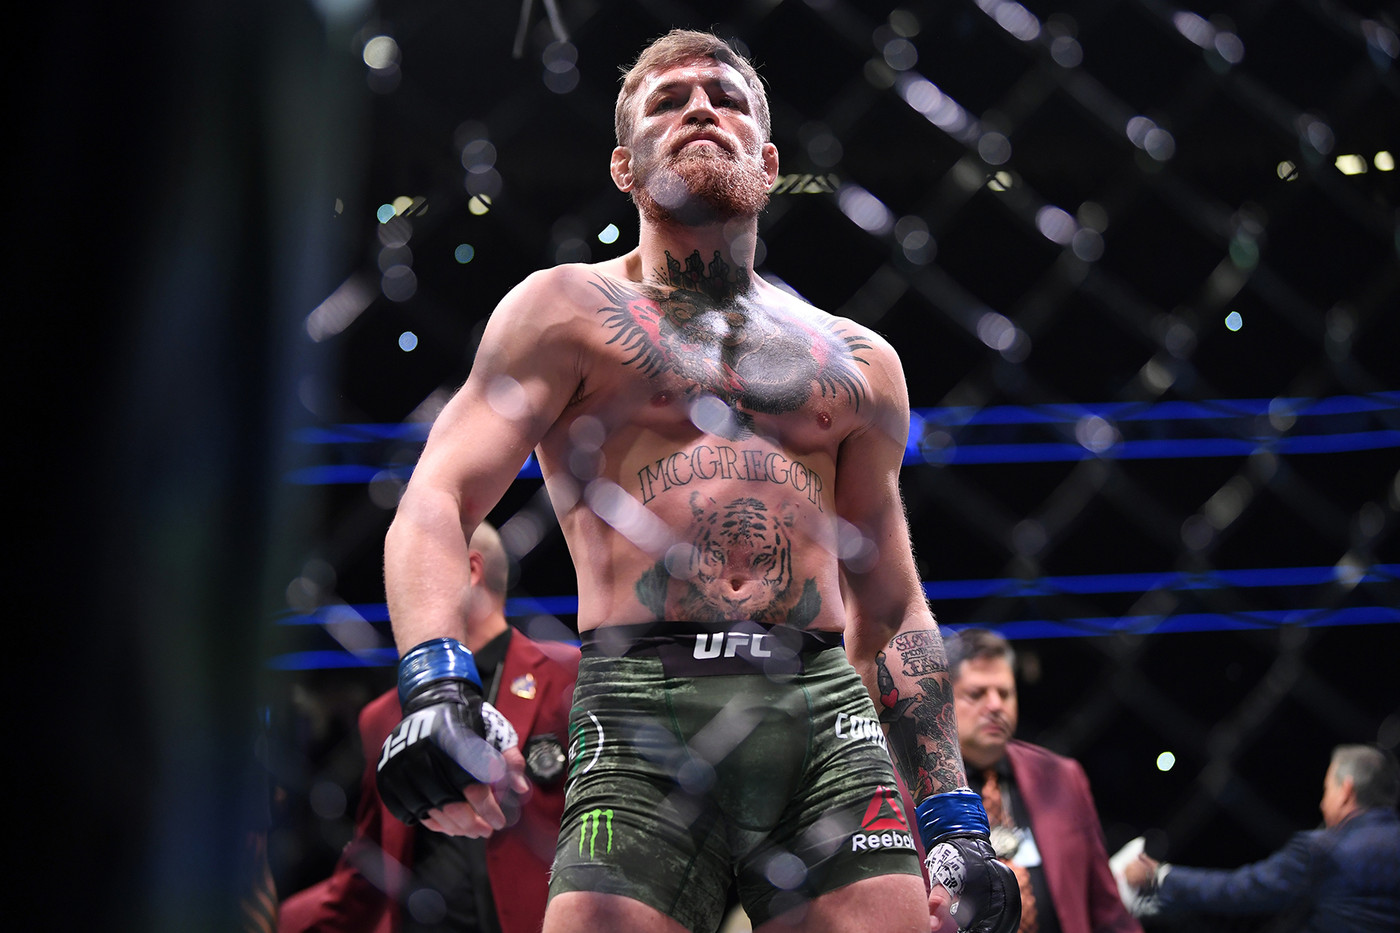 CONOR MCGREGOR, TENSHIN NASUKAWA, DERRICK ROSE, NBA, COMME DES GARCONS, COMME DES GARCONS HOMME PLUS, NIKE AIR PRESTO FOOT TENT, THE NORTH FACE, HYKE, LOOKBOOKS, THE NORTH FACE X HYKE, BANKSY, PAINTINGS, ARTWORKS,